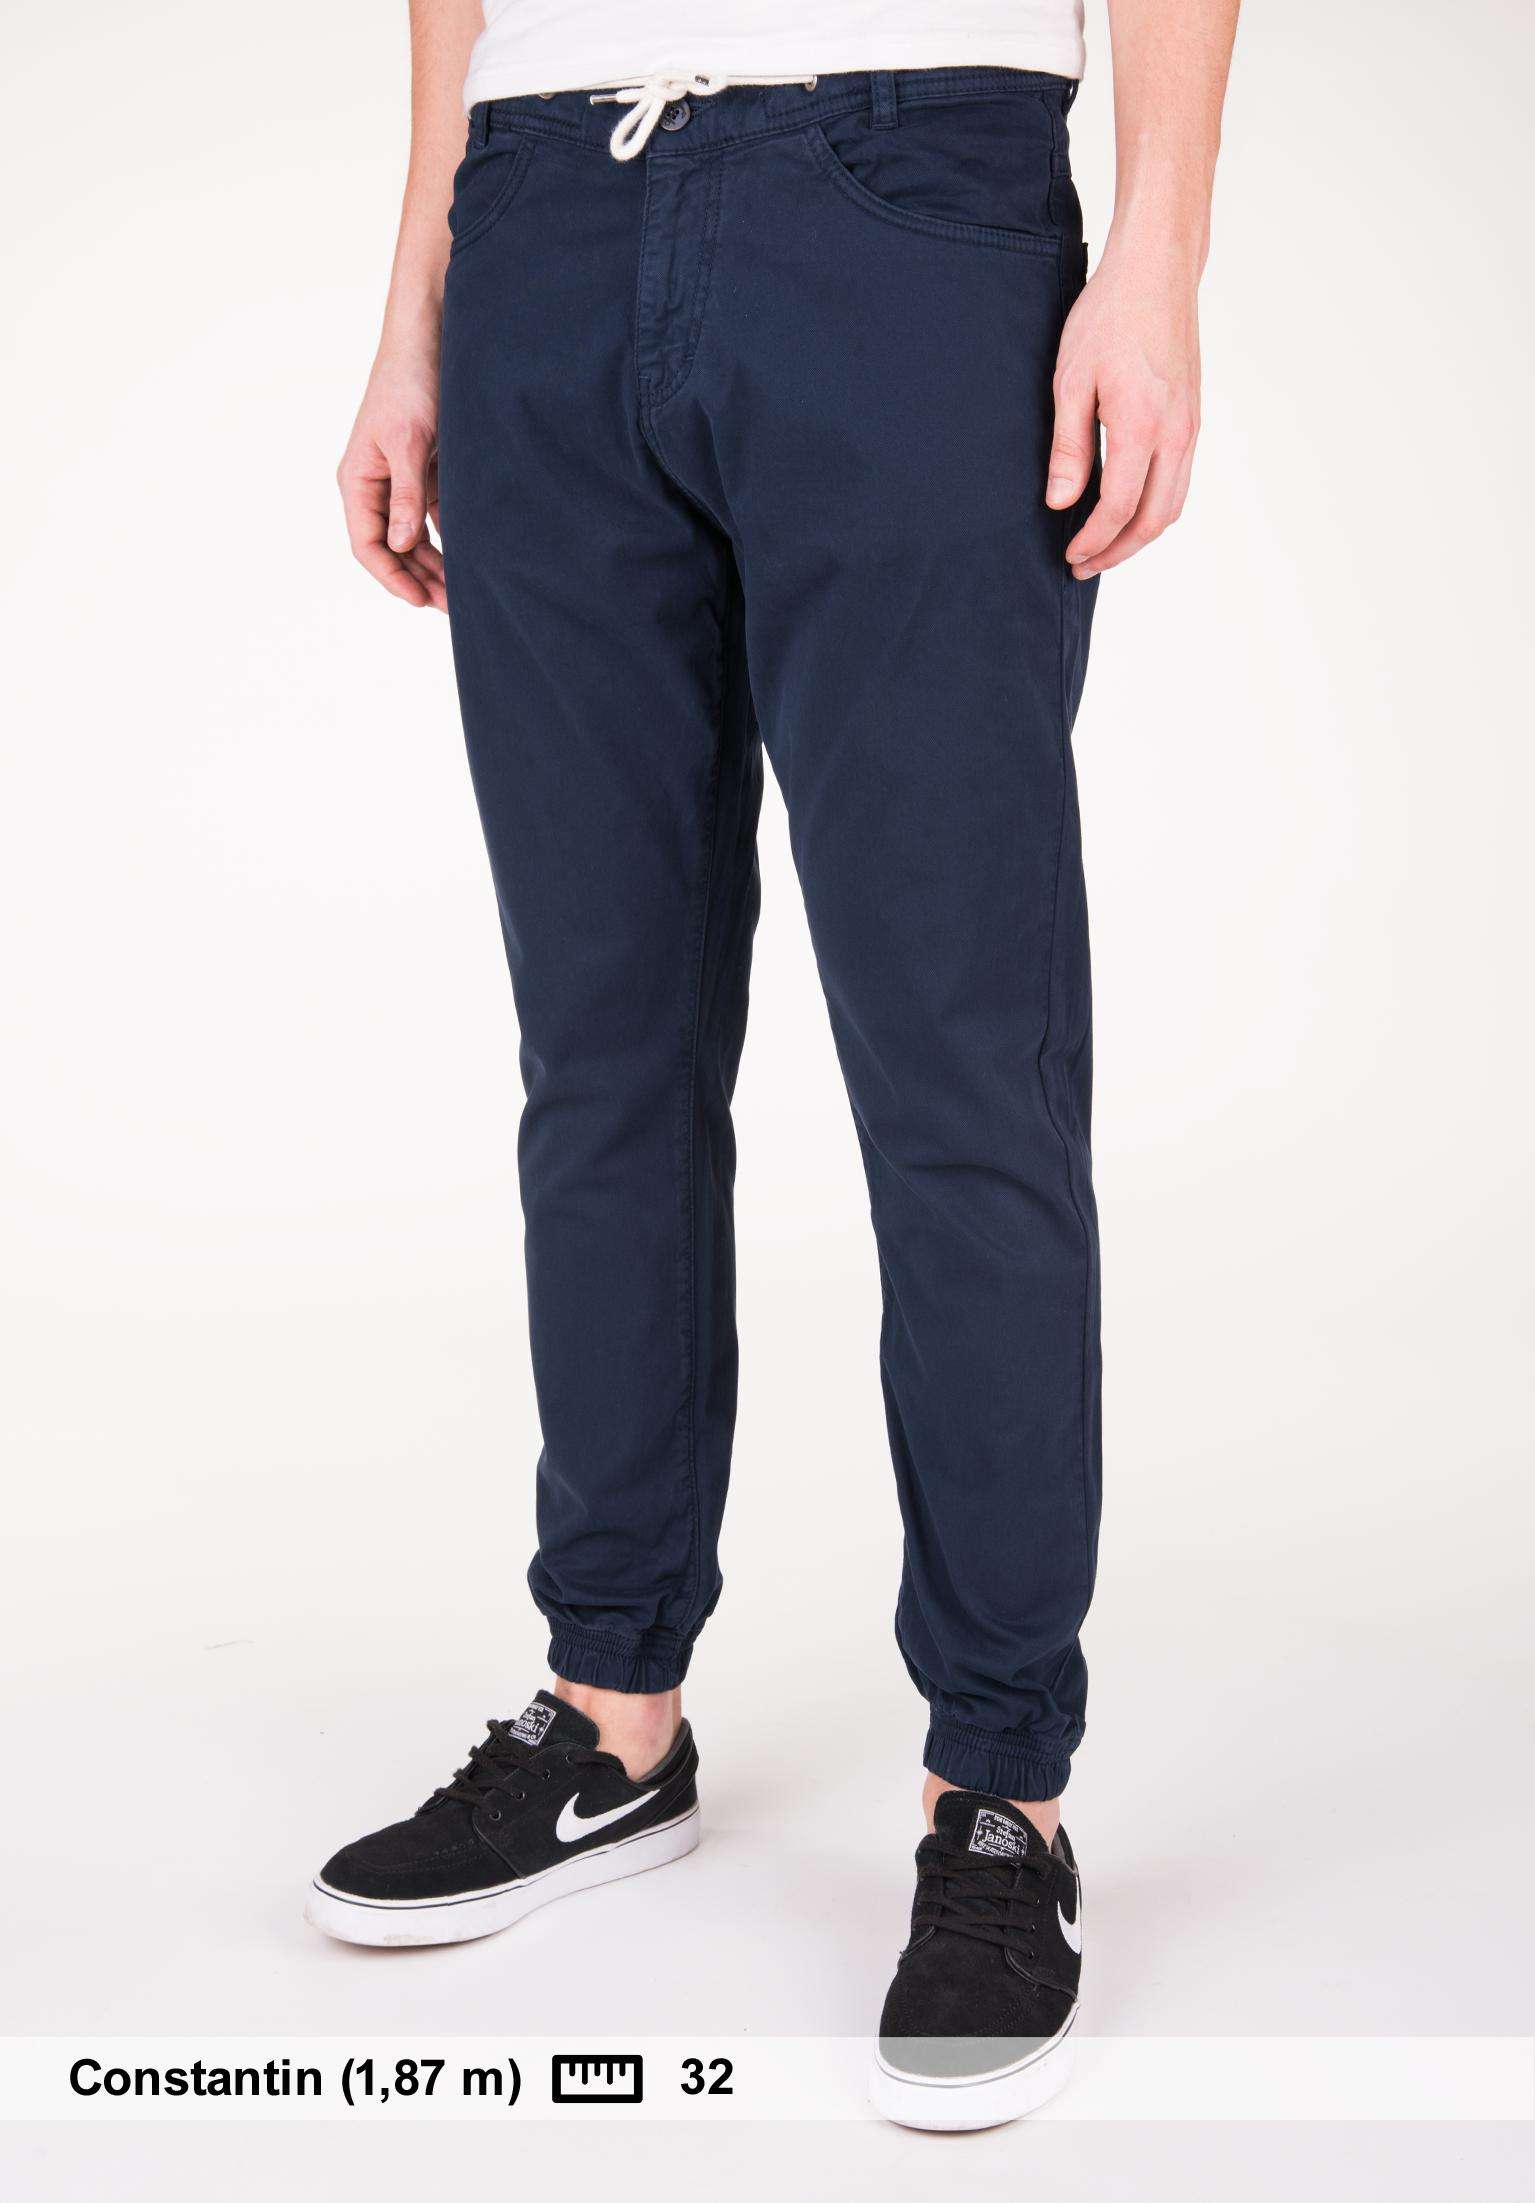 Chinowork Da UomoTitus Makia In Nautical Pantaloni Navy Trousers IYf6gbvmy7